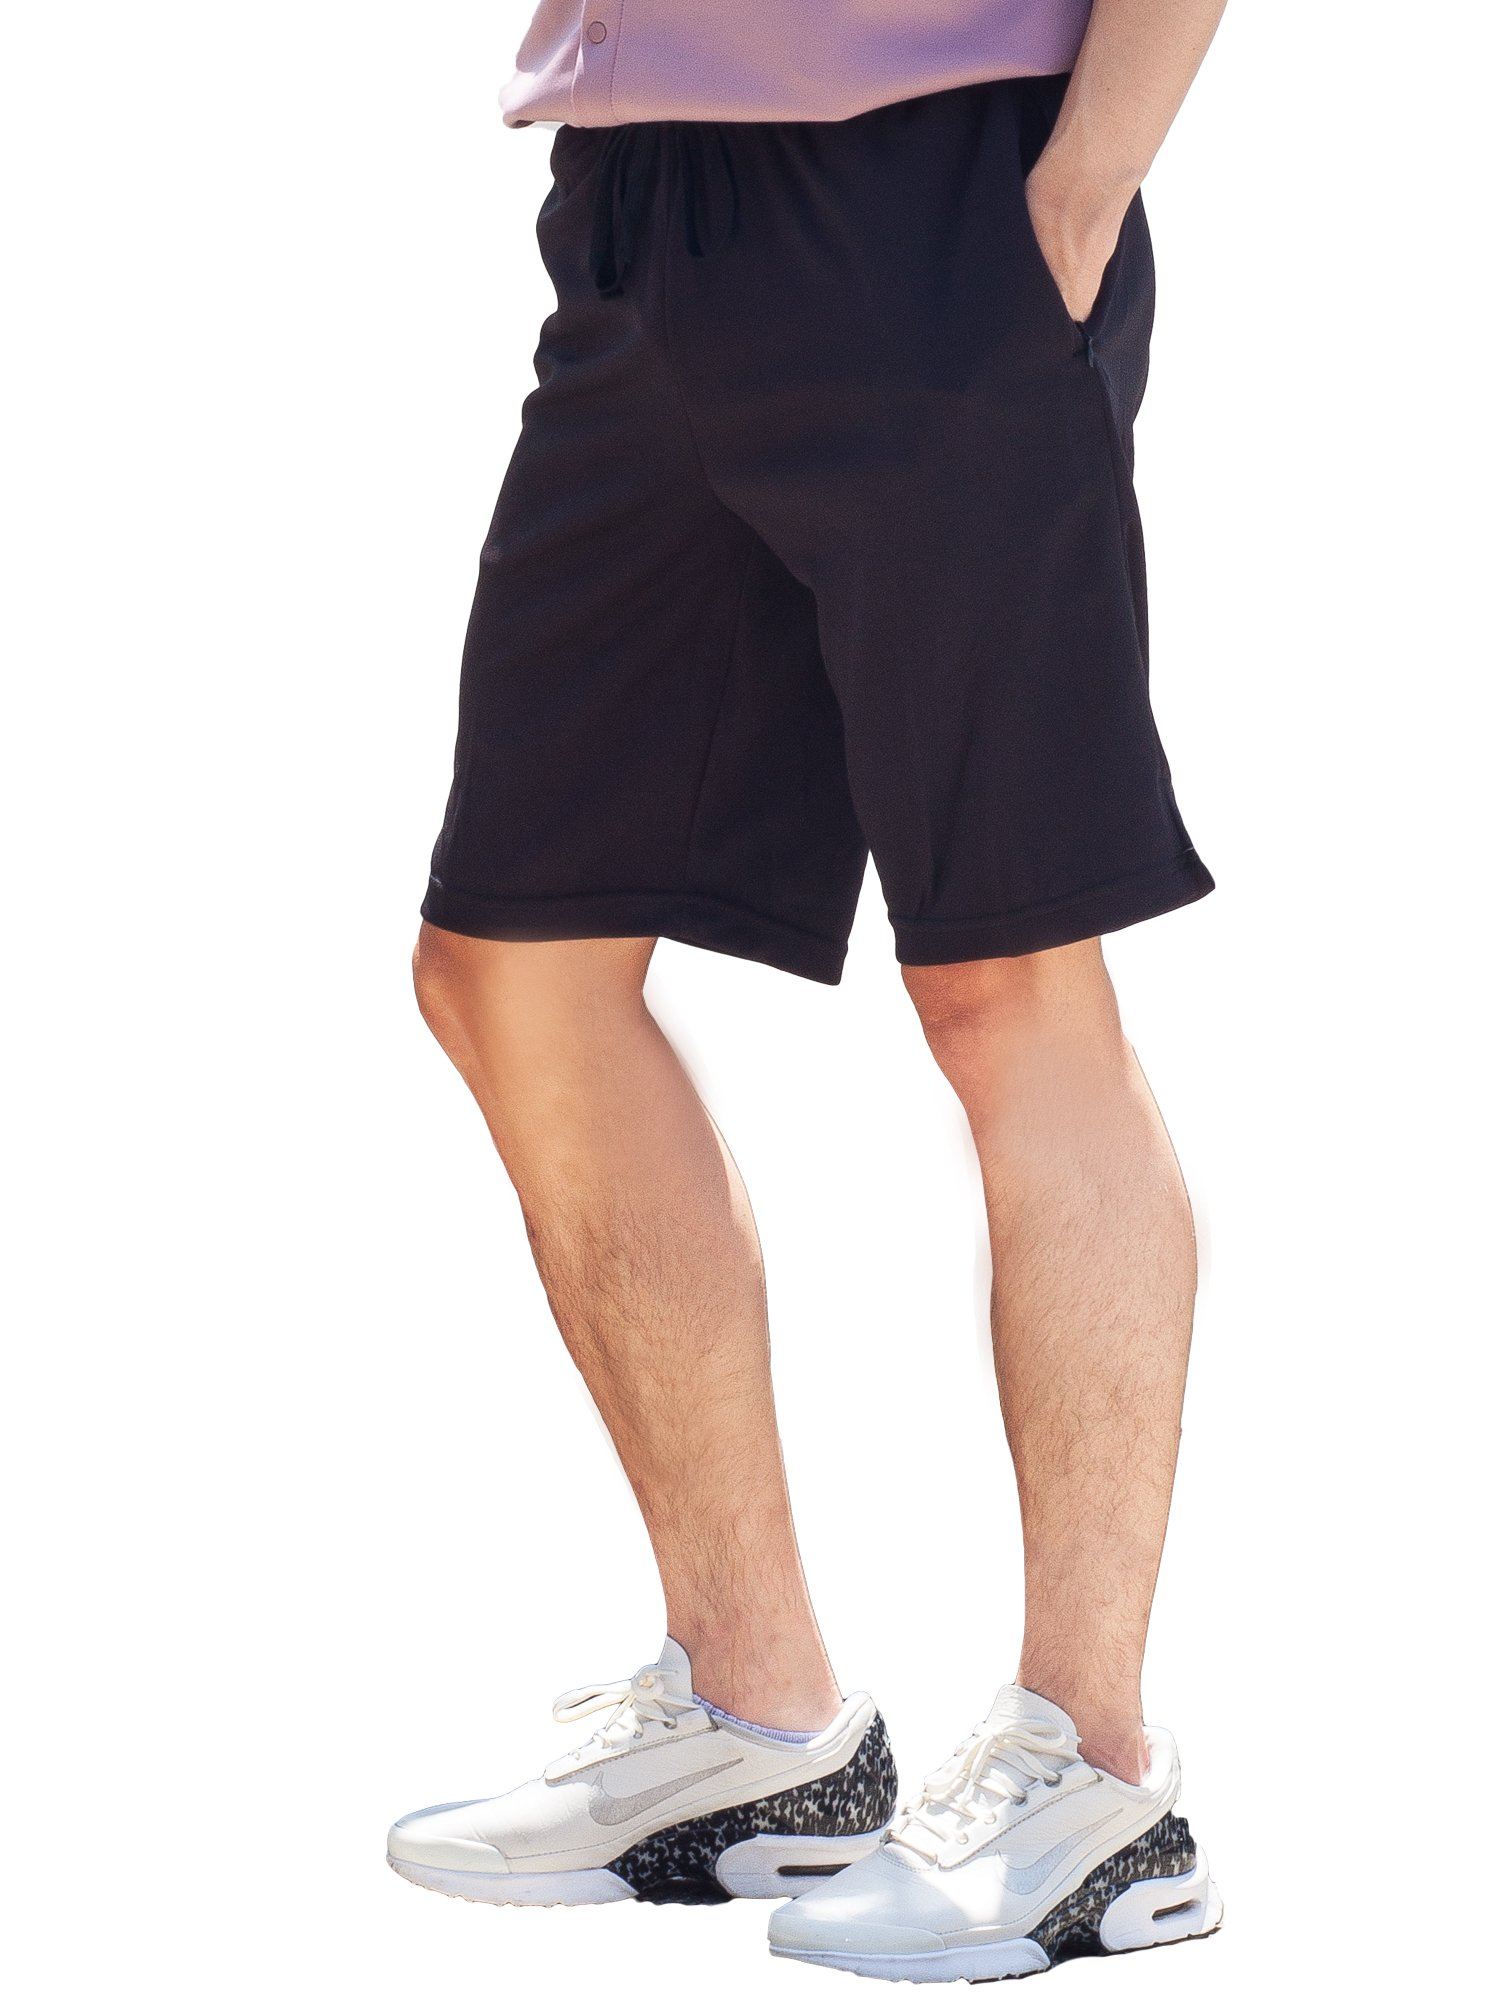 Mens Shorts with Zipper Pockets Quick Dry Travel Shorts (2XL Plus, Black)